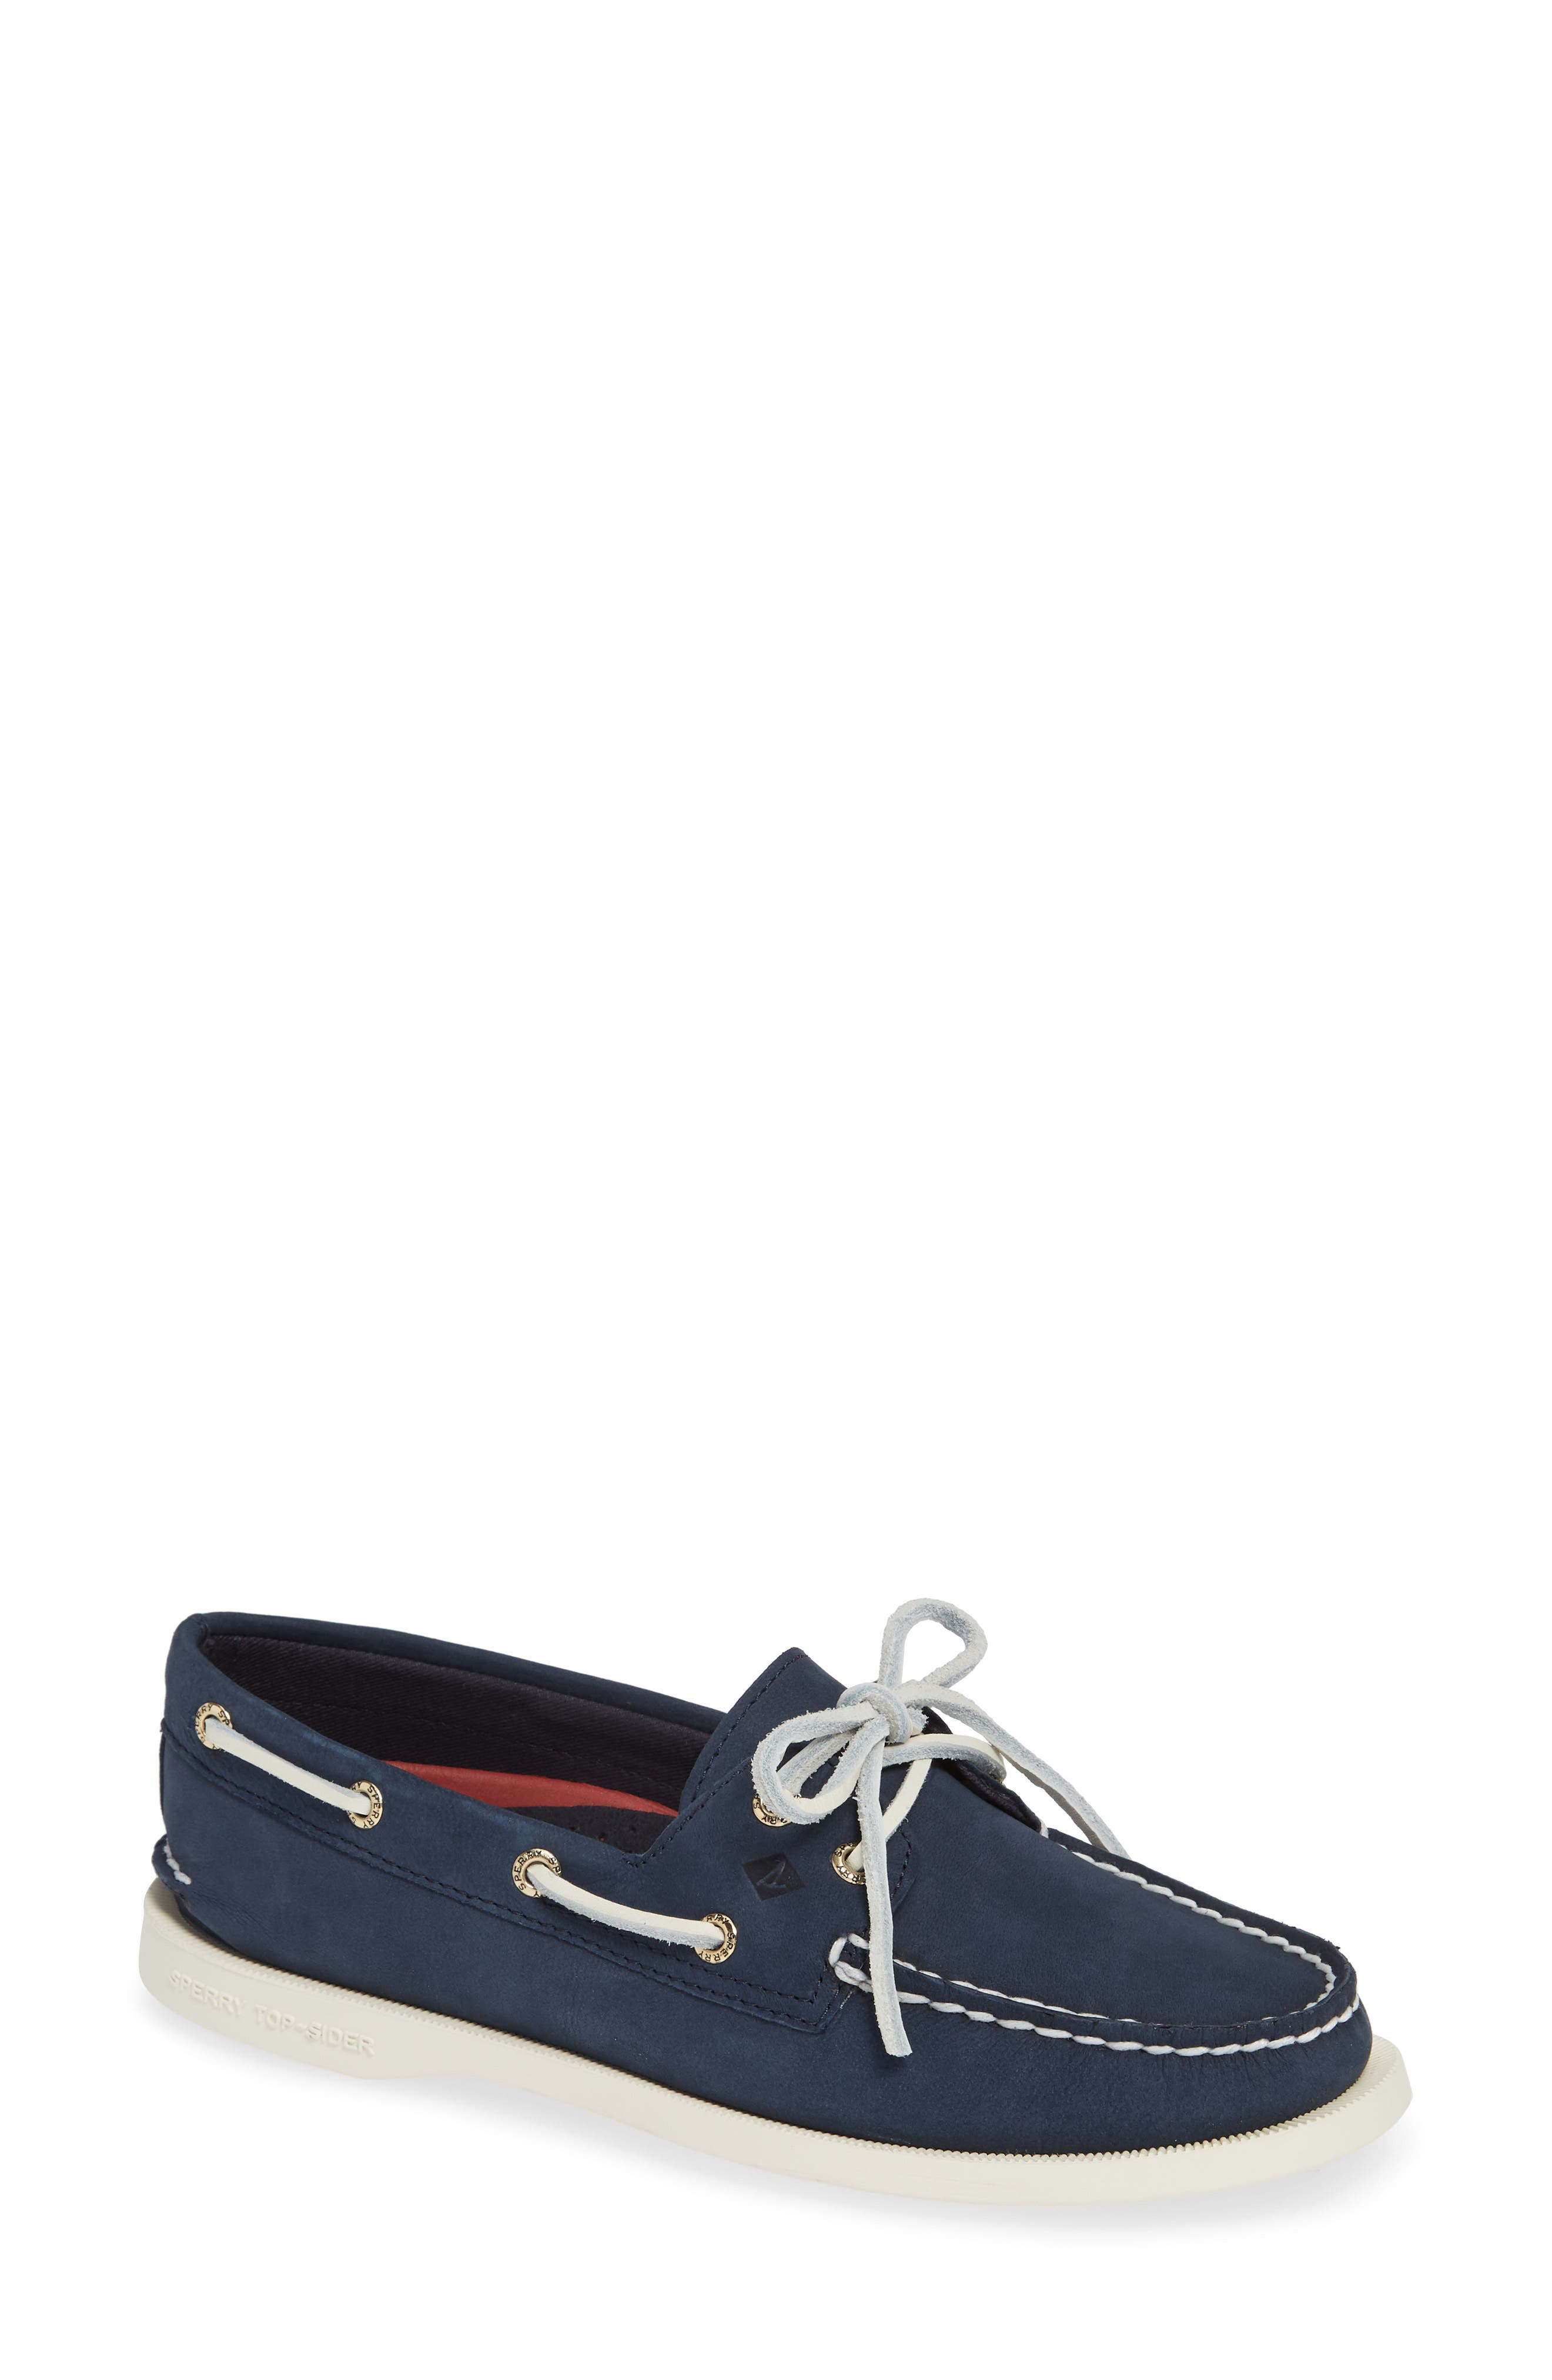 2-Eyelet Boat Shoe,                         Main,                         color, NAVY LEATHER